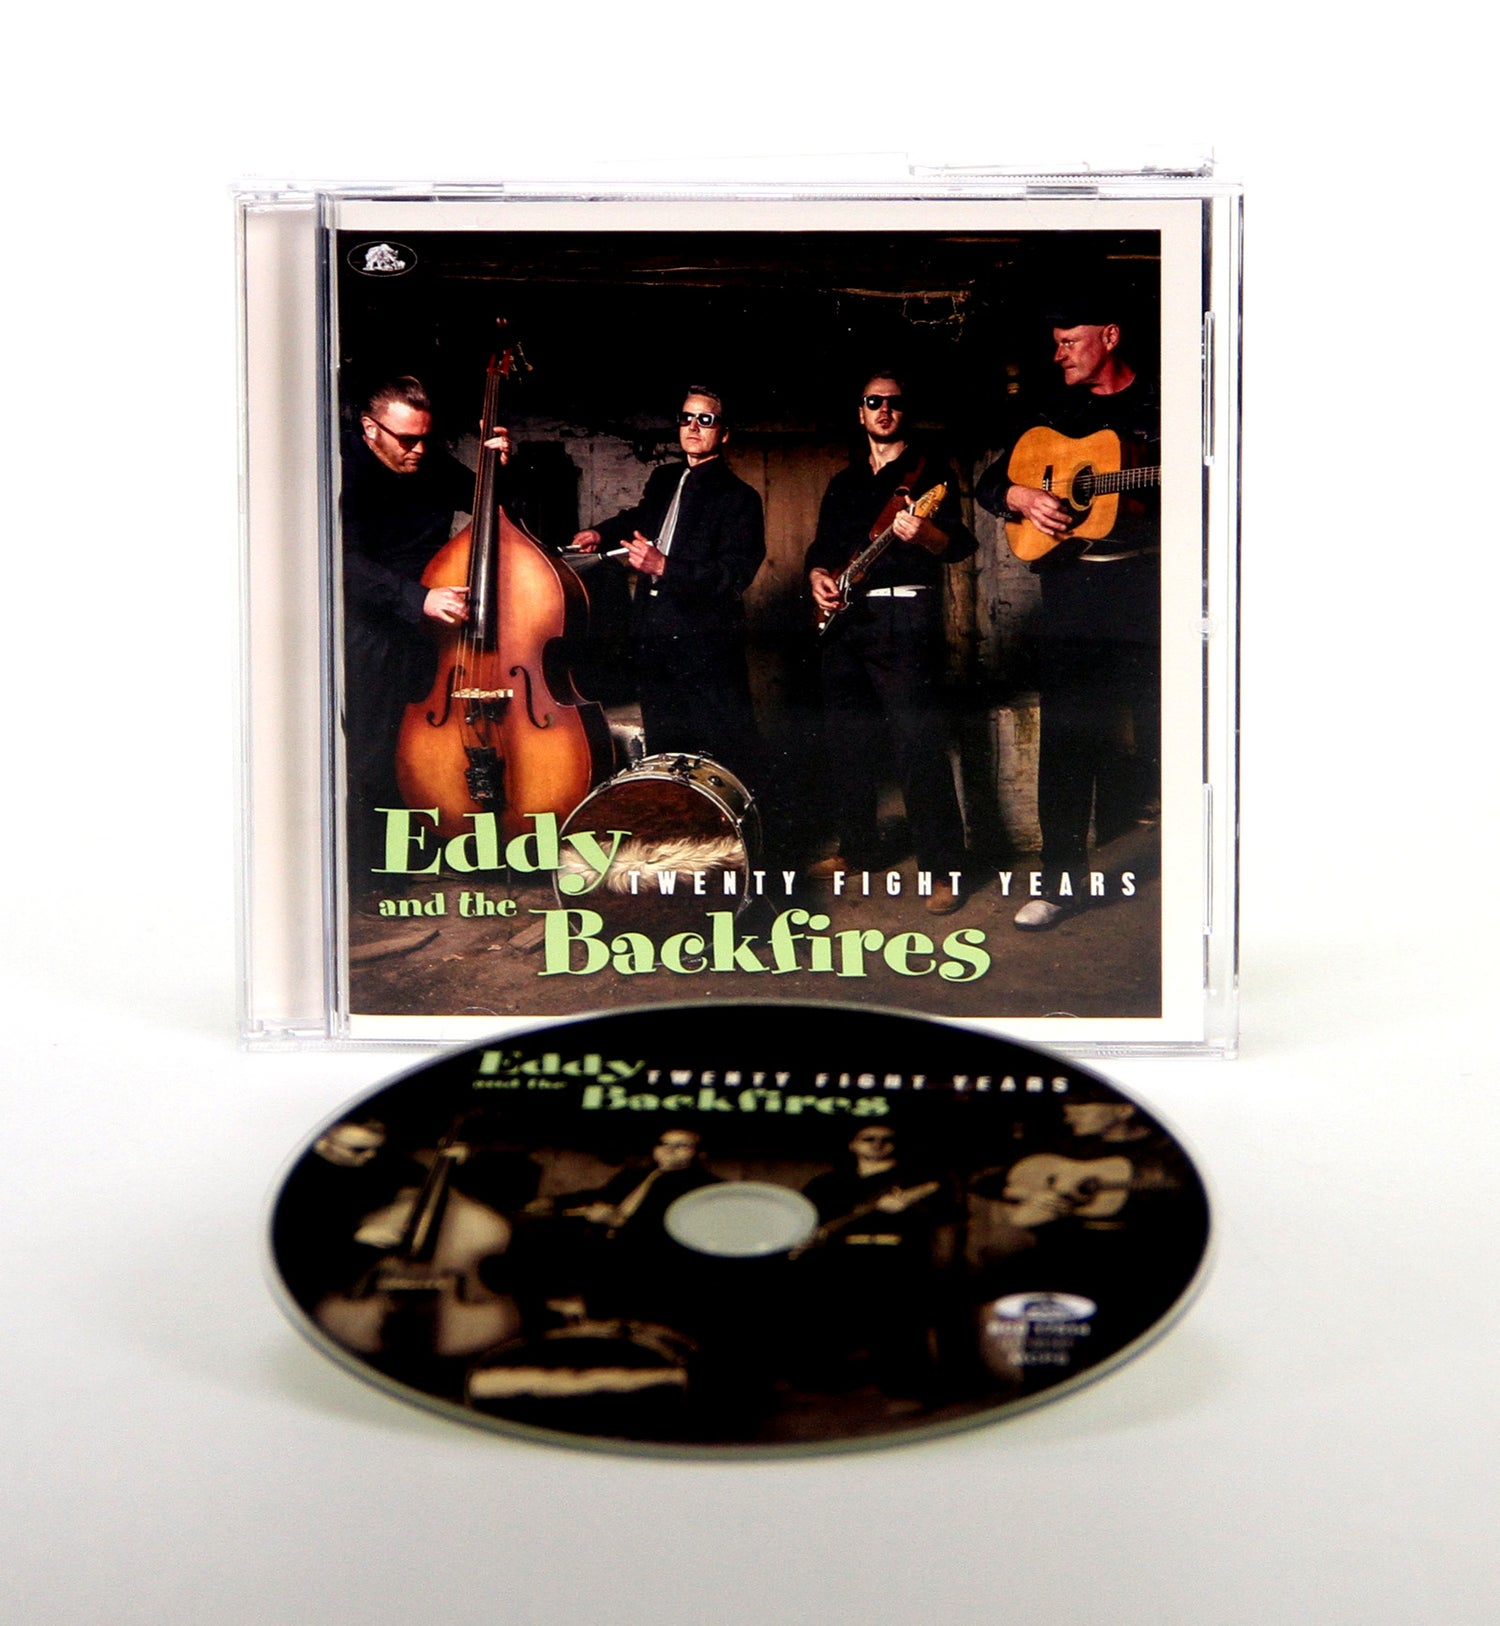 Image of Eddy and the Backfires - Twenty Fight Years (Album CD)